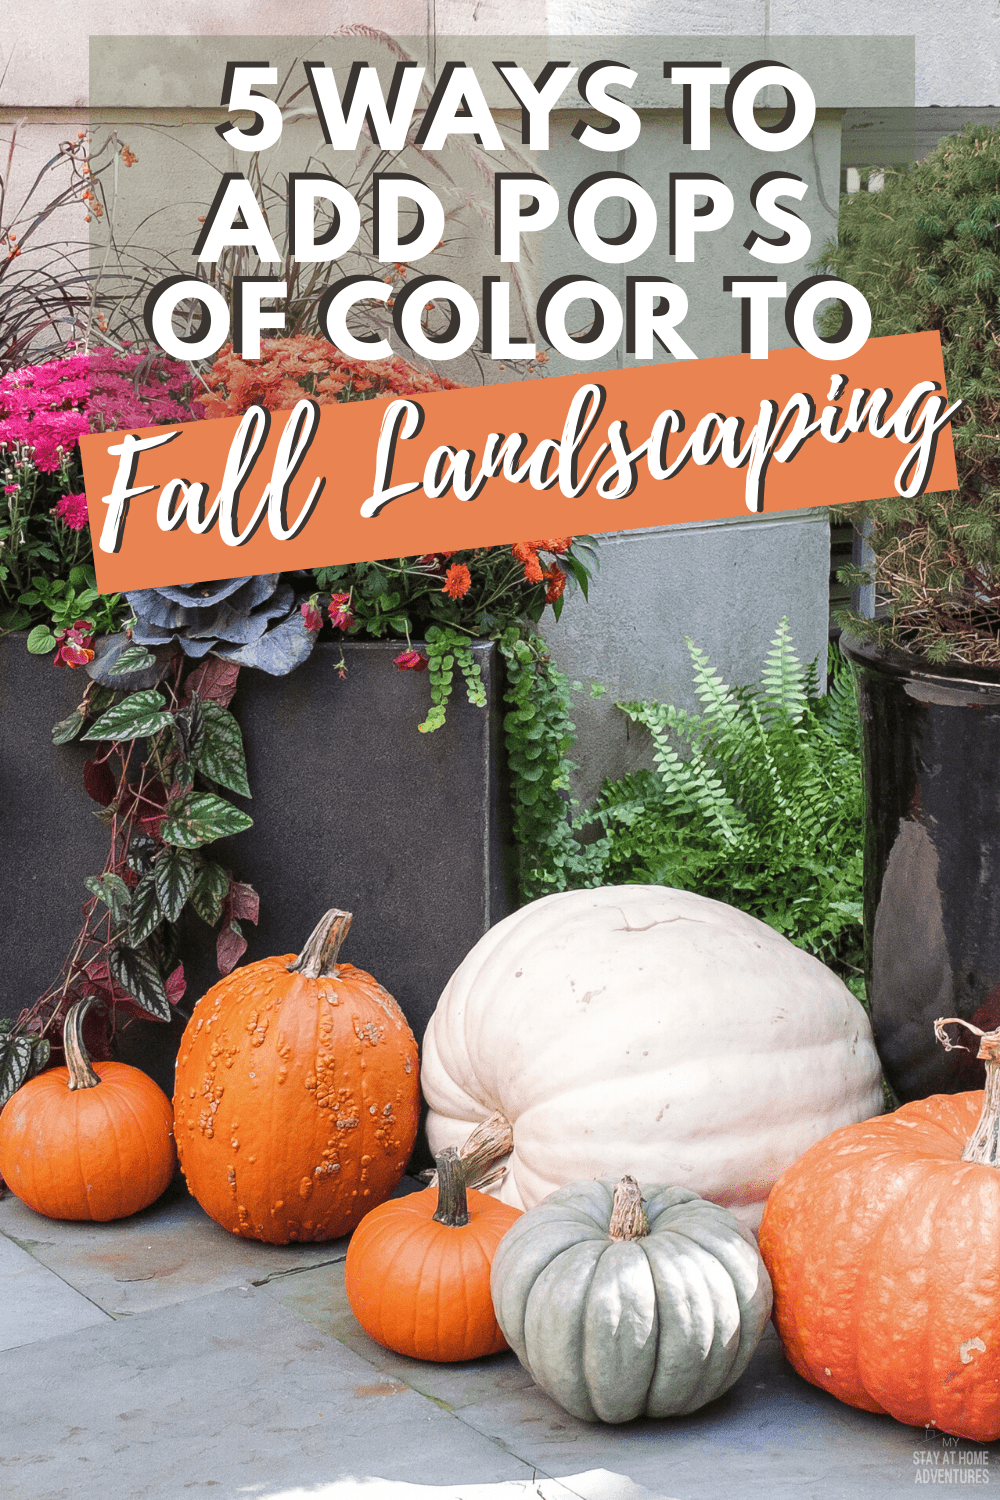 Can you landscape your yard in the fall? The answer is yes. Learn five fall landscaping ideas to help you get started and wow your neighbors. #fall #landscaping #frontyard via @mystayathome